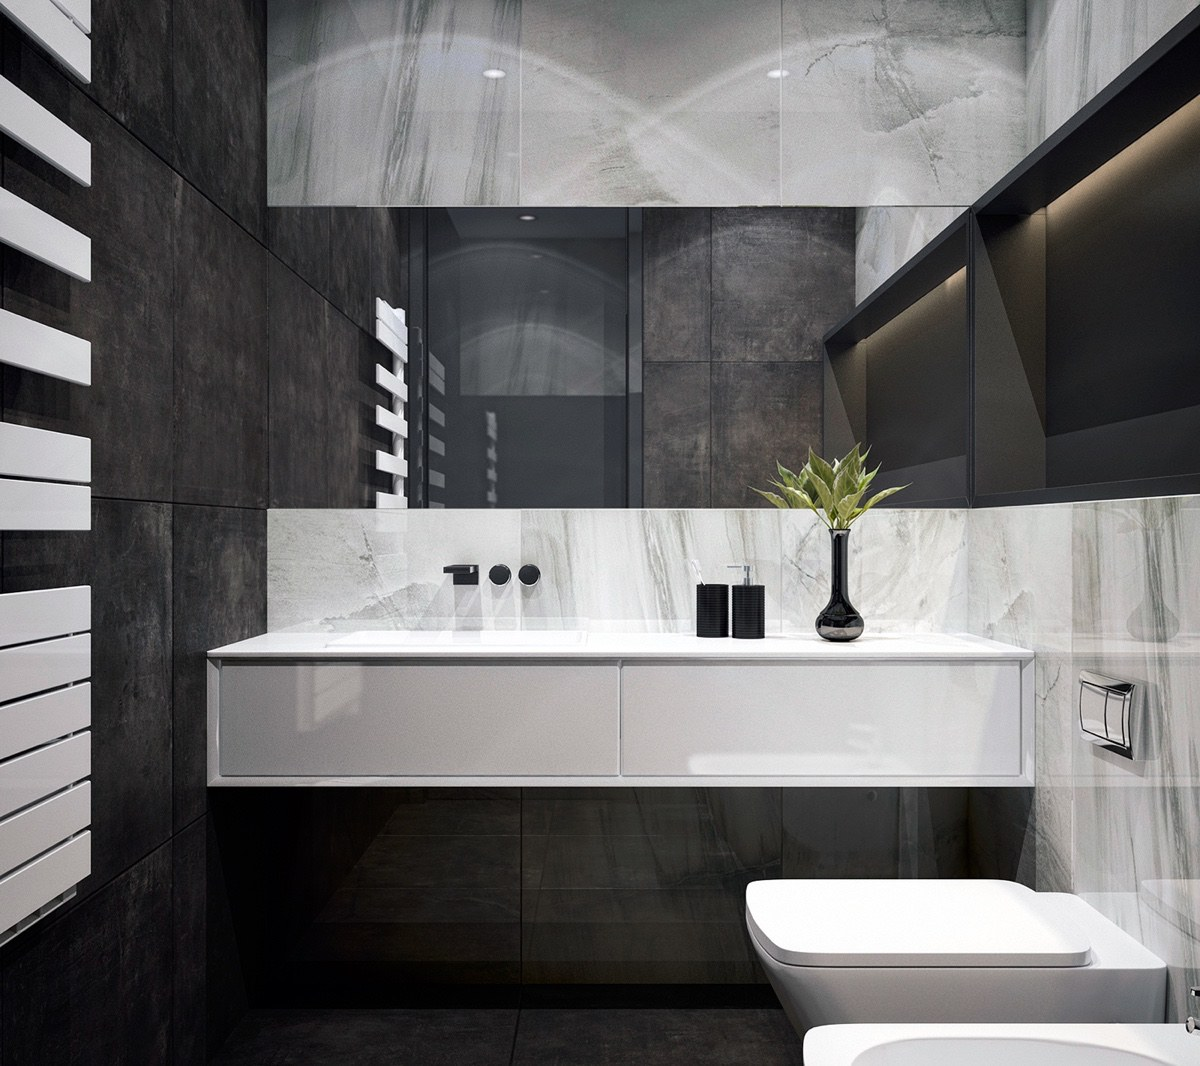 Shades Of Grey Bathroom Large Format Tiles Central Mirror Panel - 4 monochrome minimalist spaces creating black and white magic